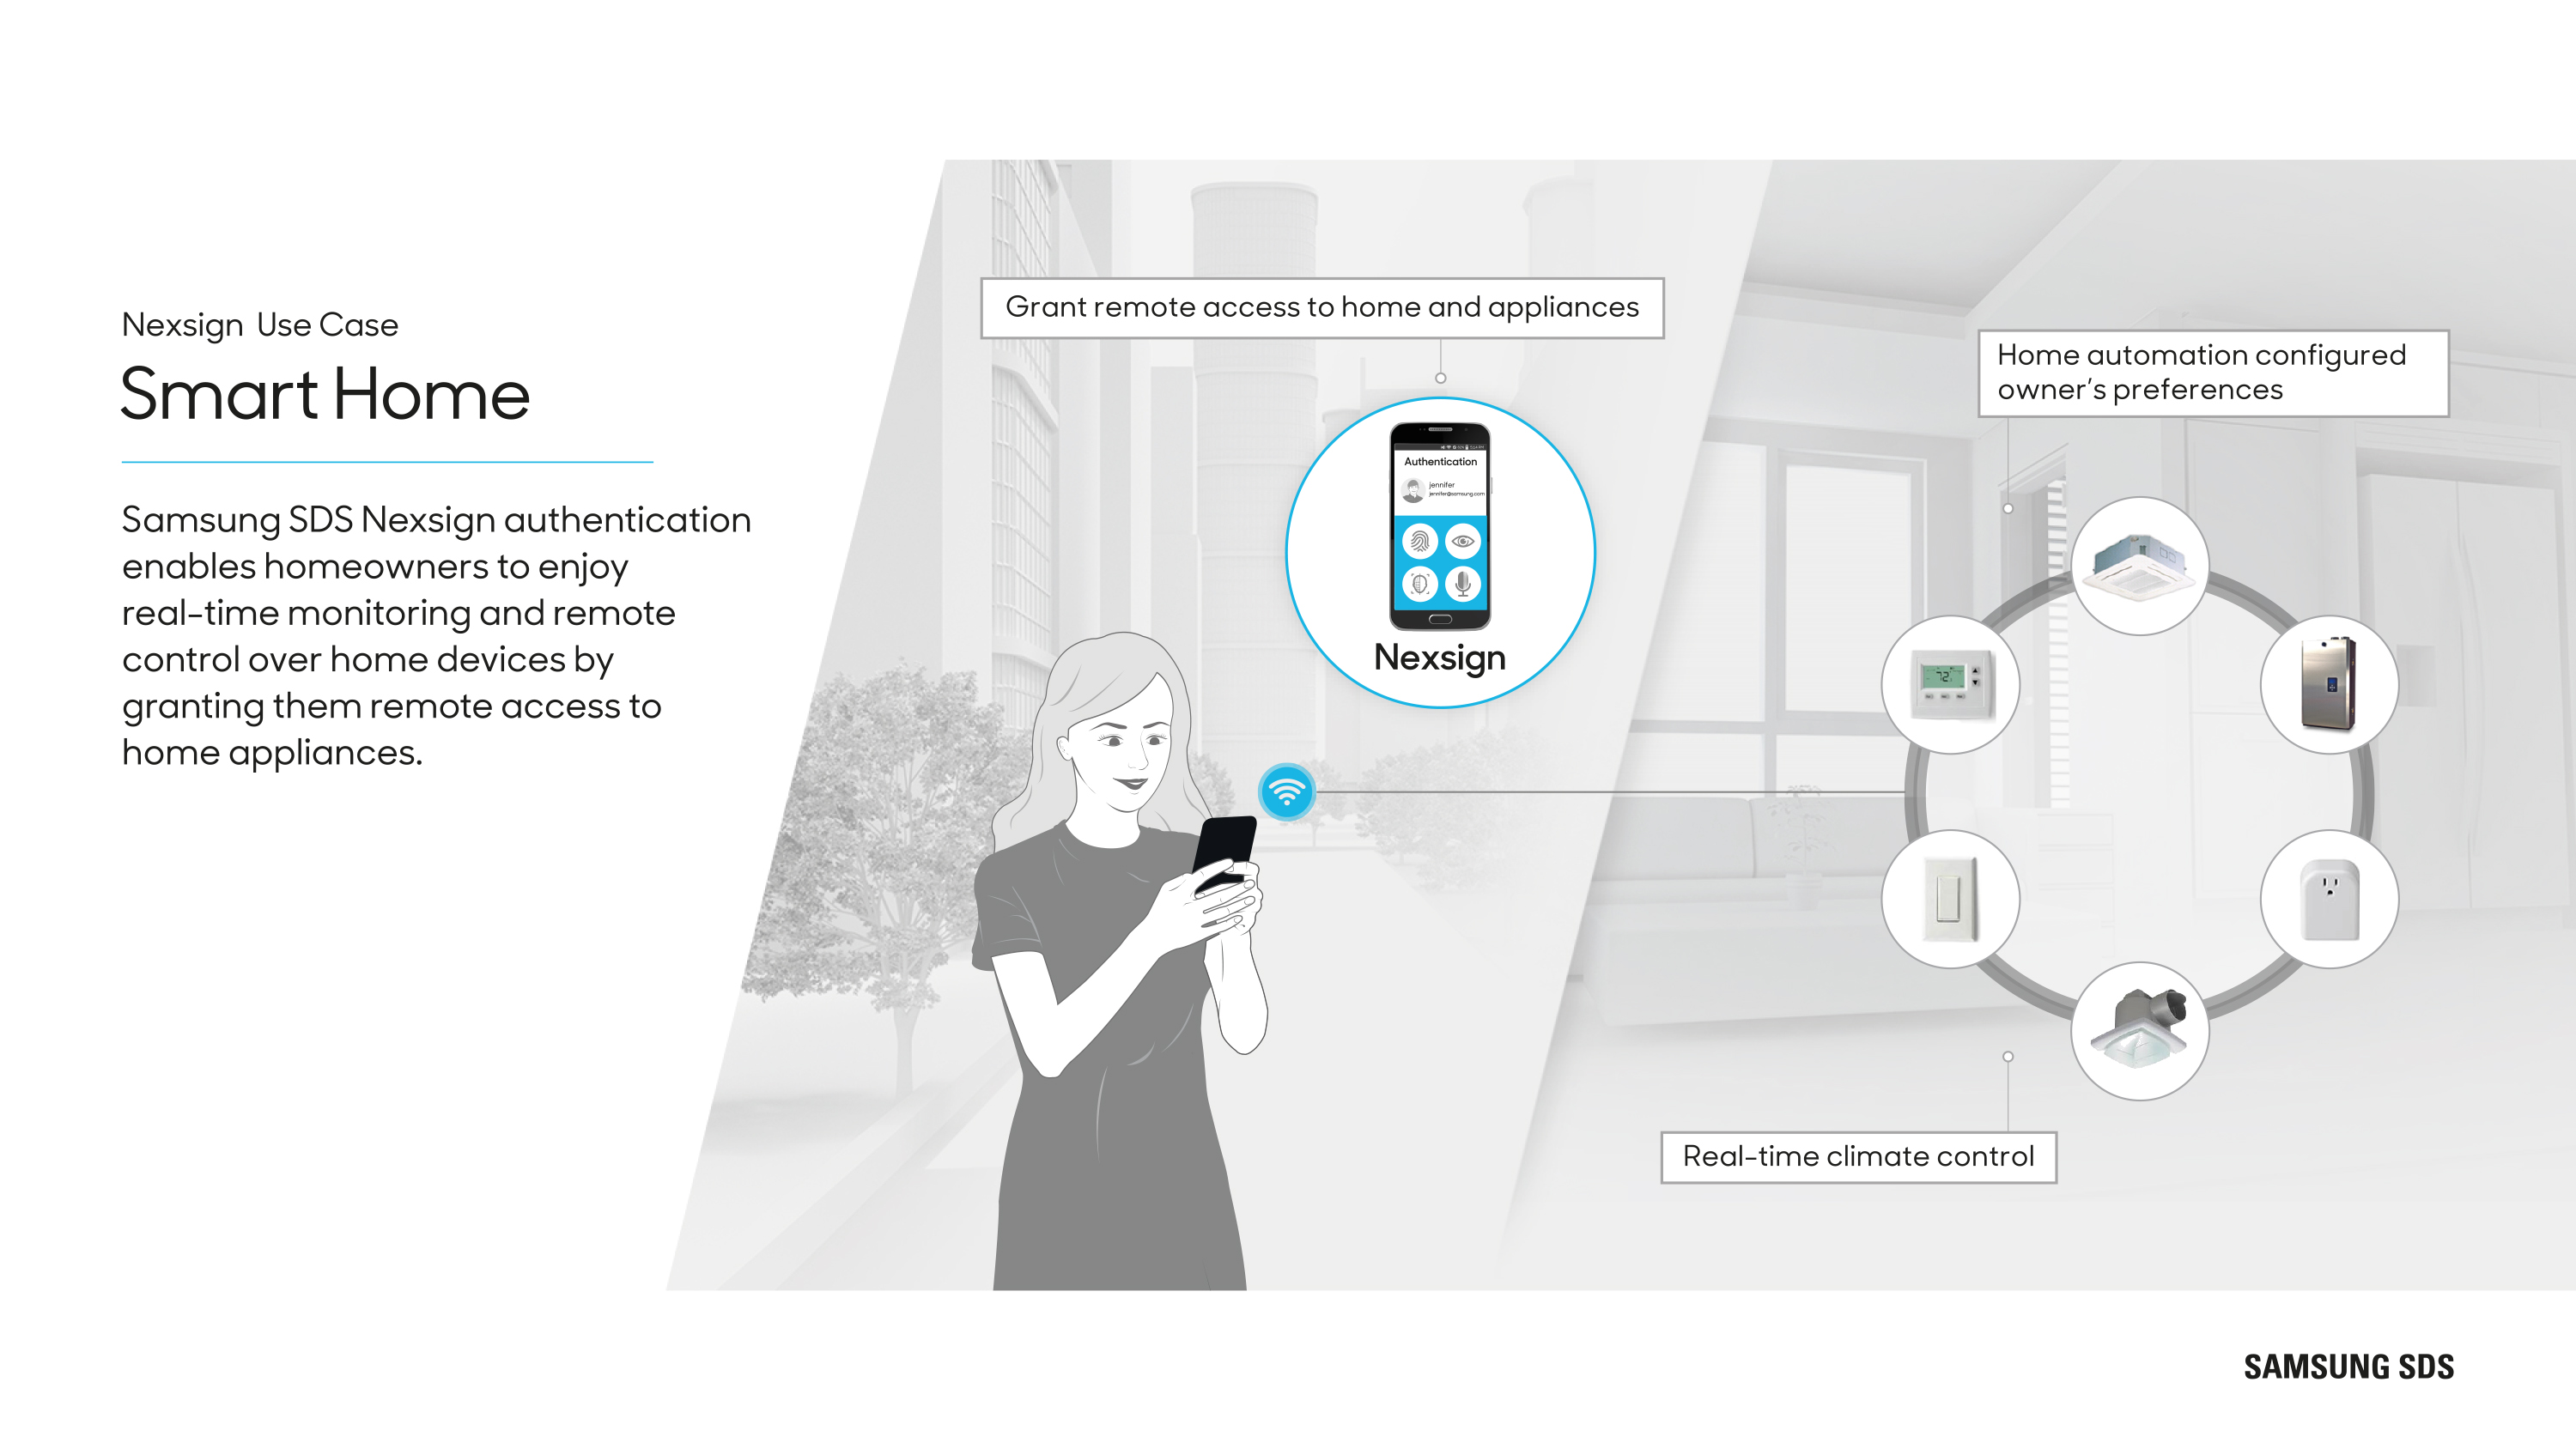 Smart Home Samsung SDS Nexsign authentication enables homeowners to enjoy real-time monitoring and remote control over home devices by granting them remote access to home appliances.